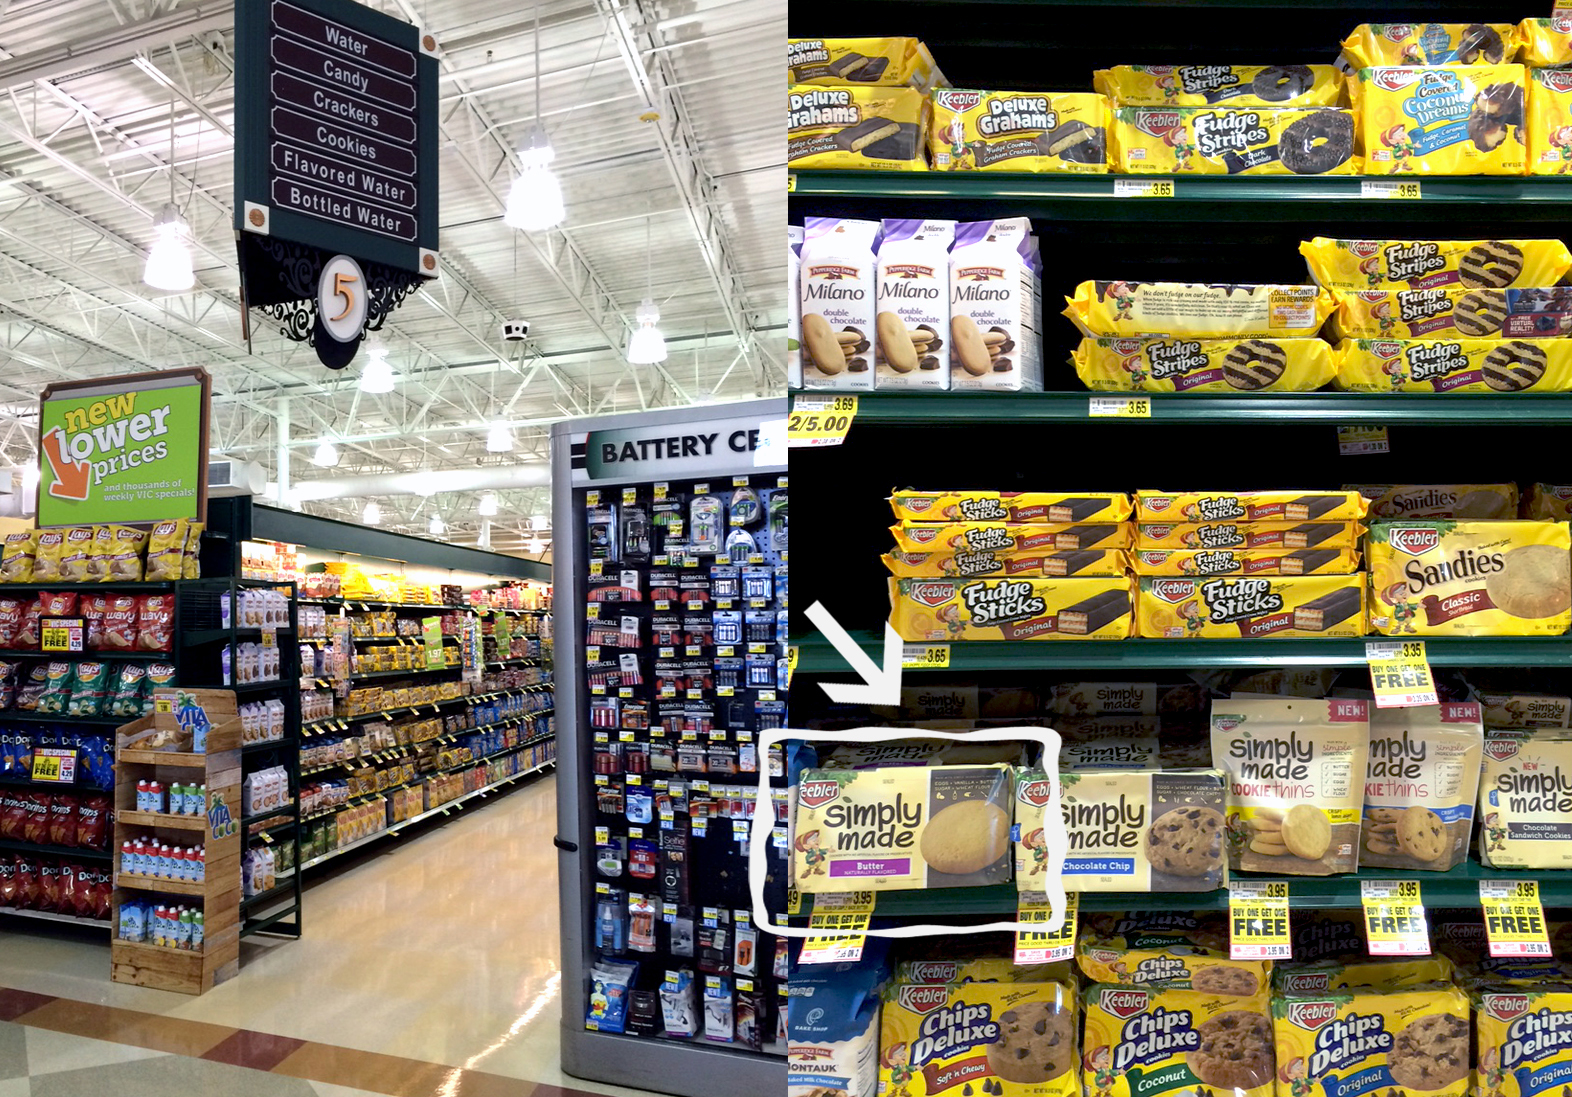 Where to Find Keebler® Simply Made Butter Cookies